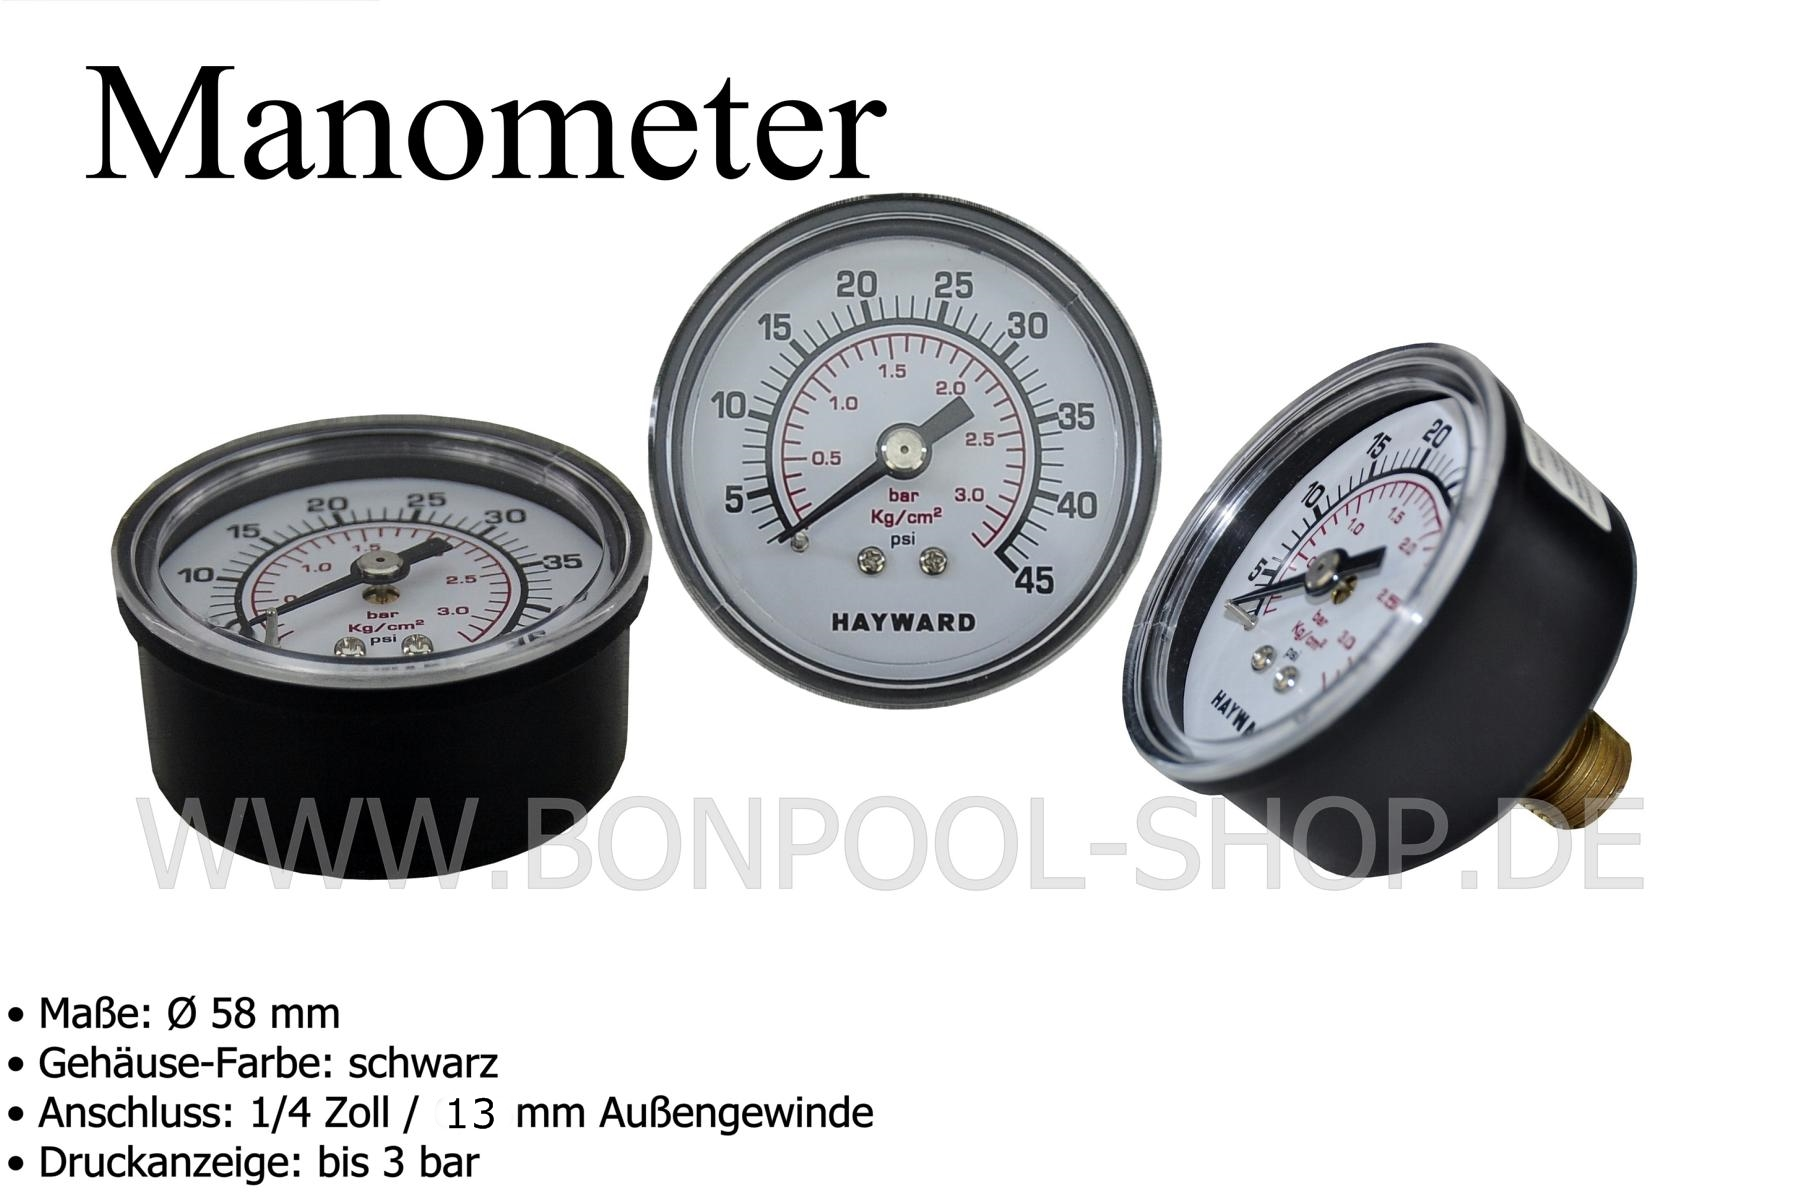 Poolheizung Rohr Bon Pool Manometer